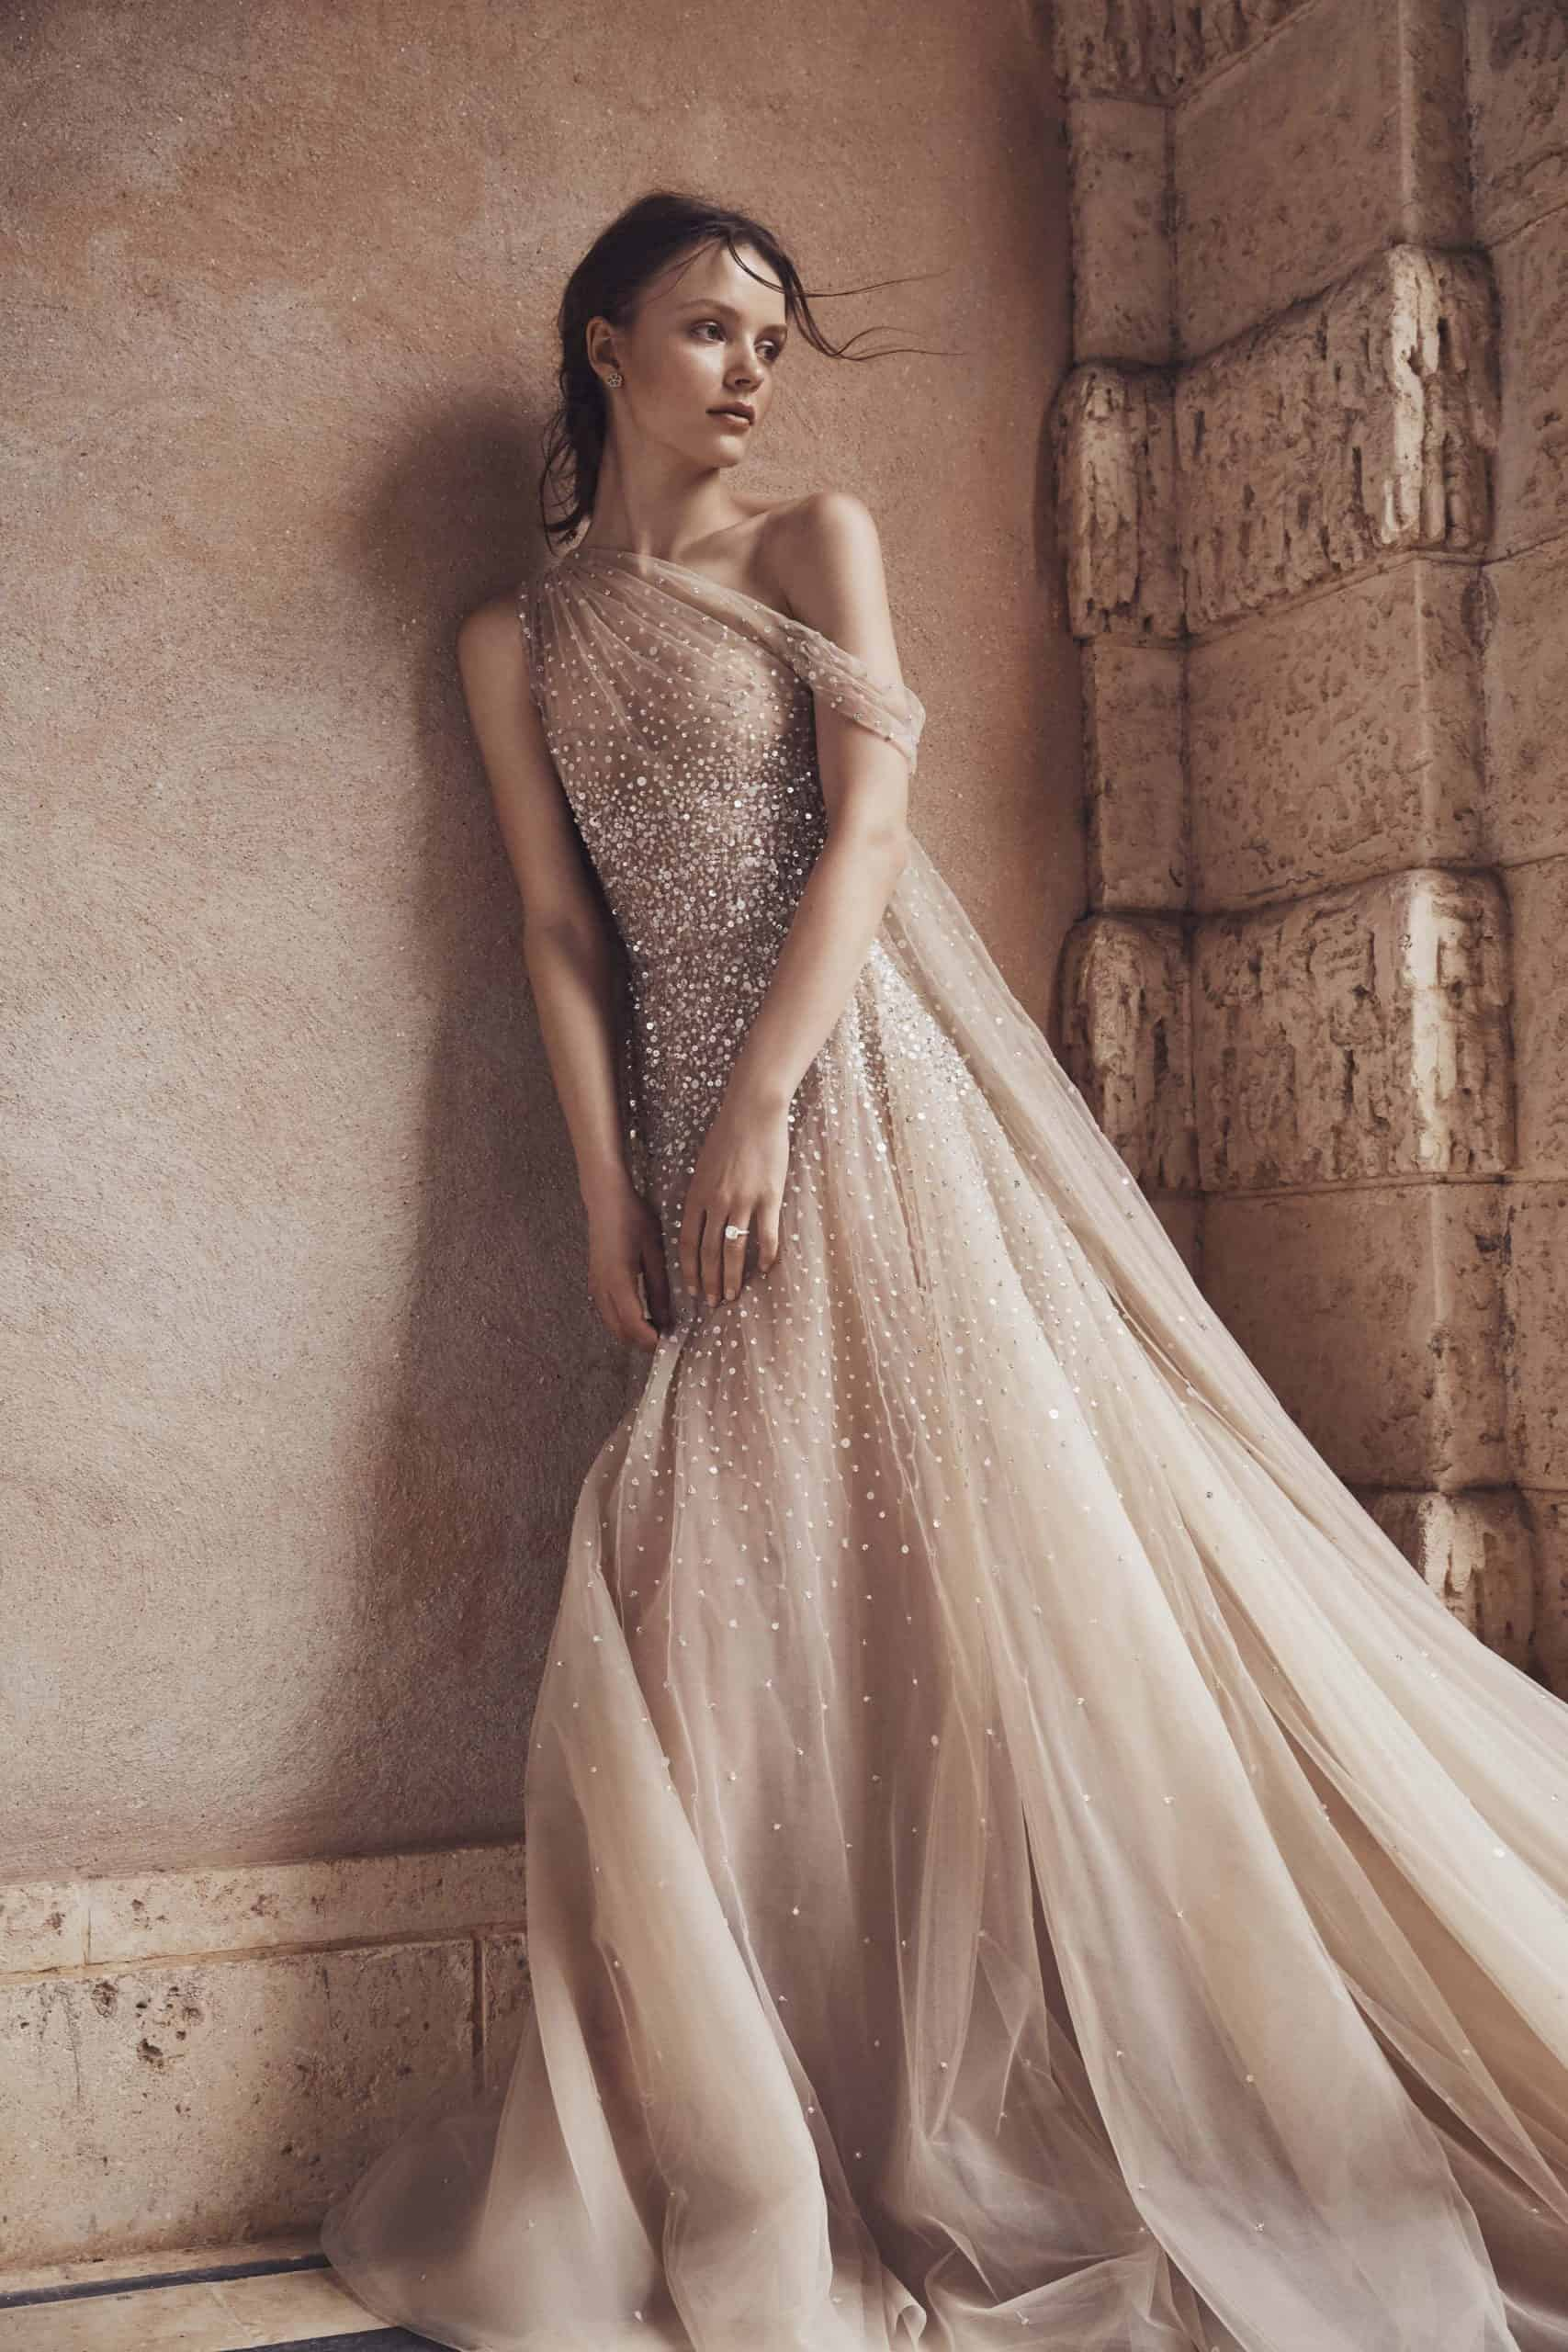 tulle wedding dress with diamonds by Monique Lhuillier